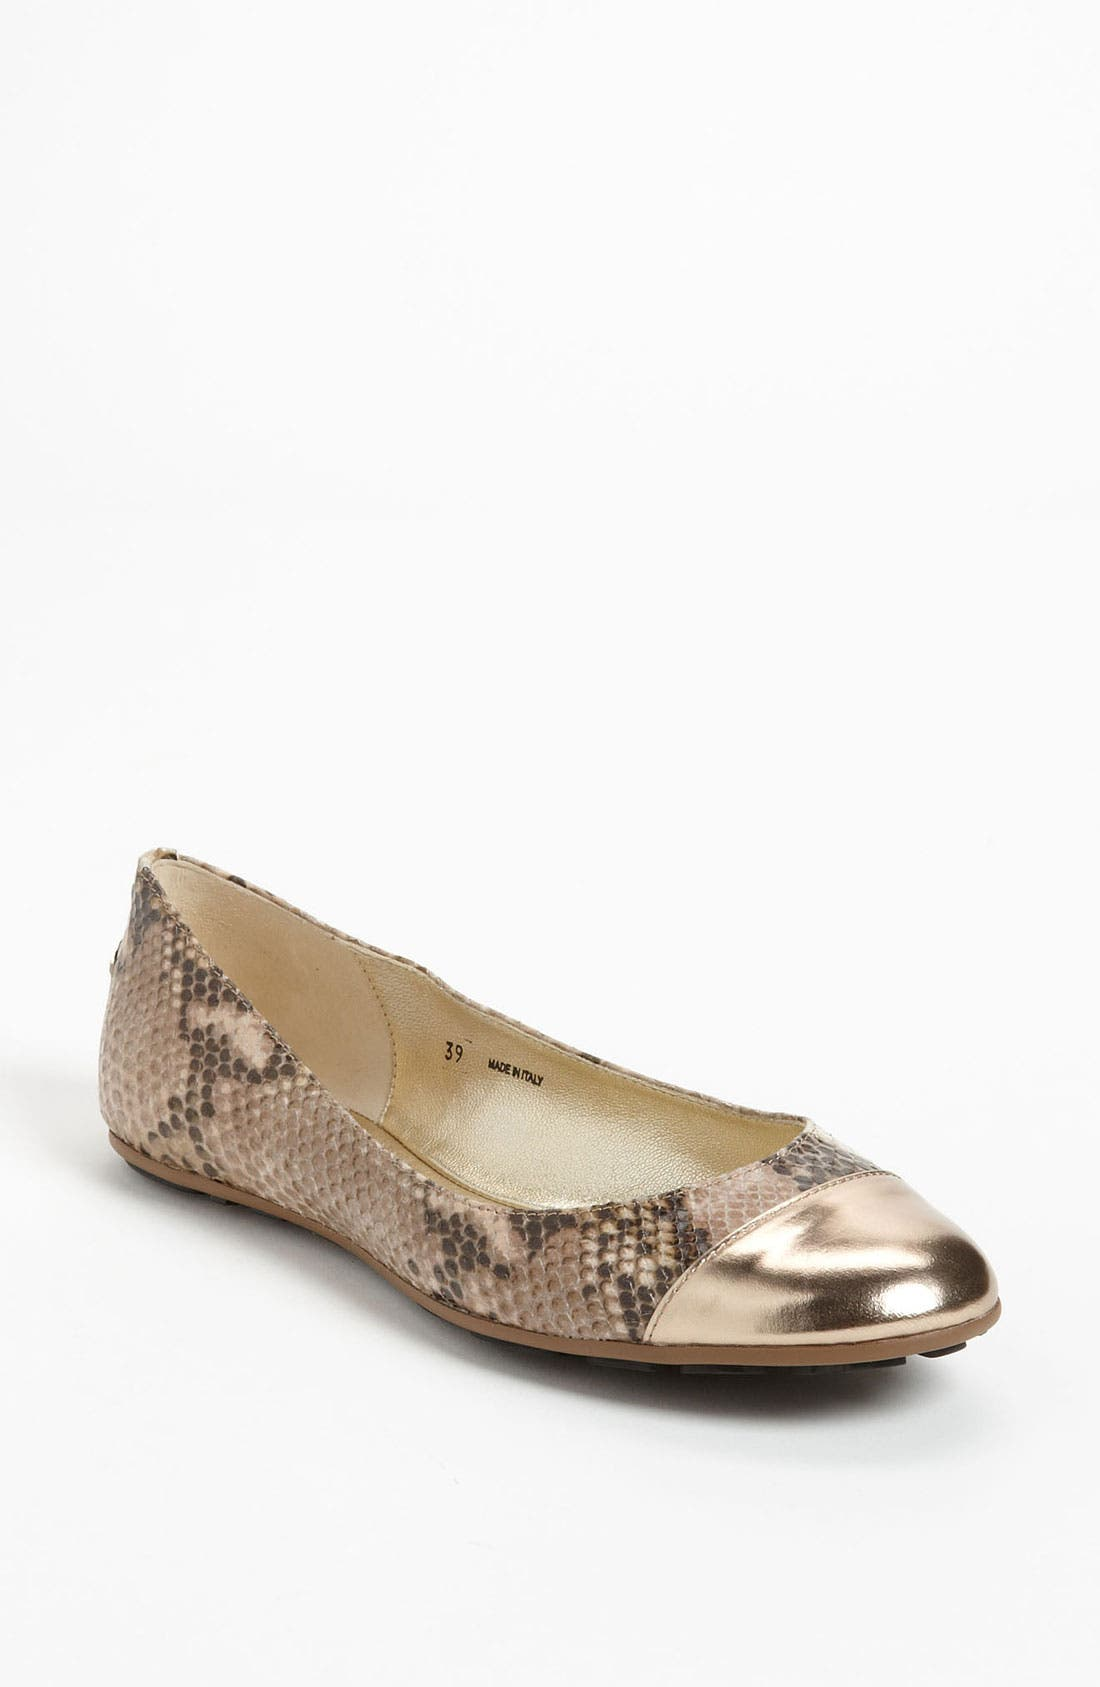 Alternate Image 1 Selected - Jimmy Choo 'Whirl' Ballet Flat